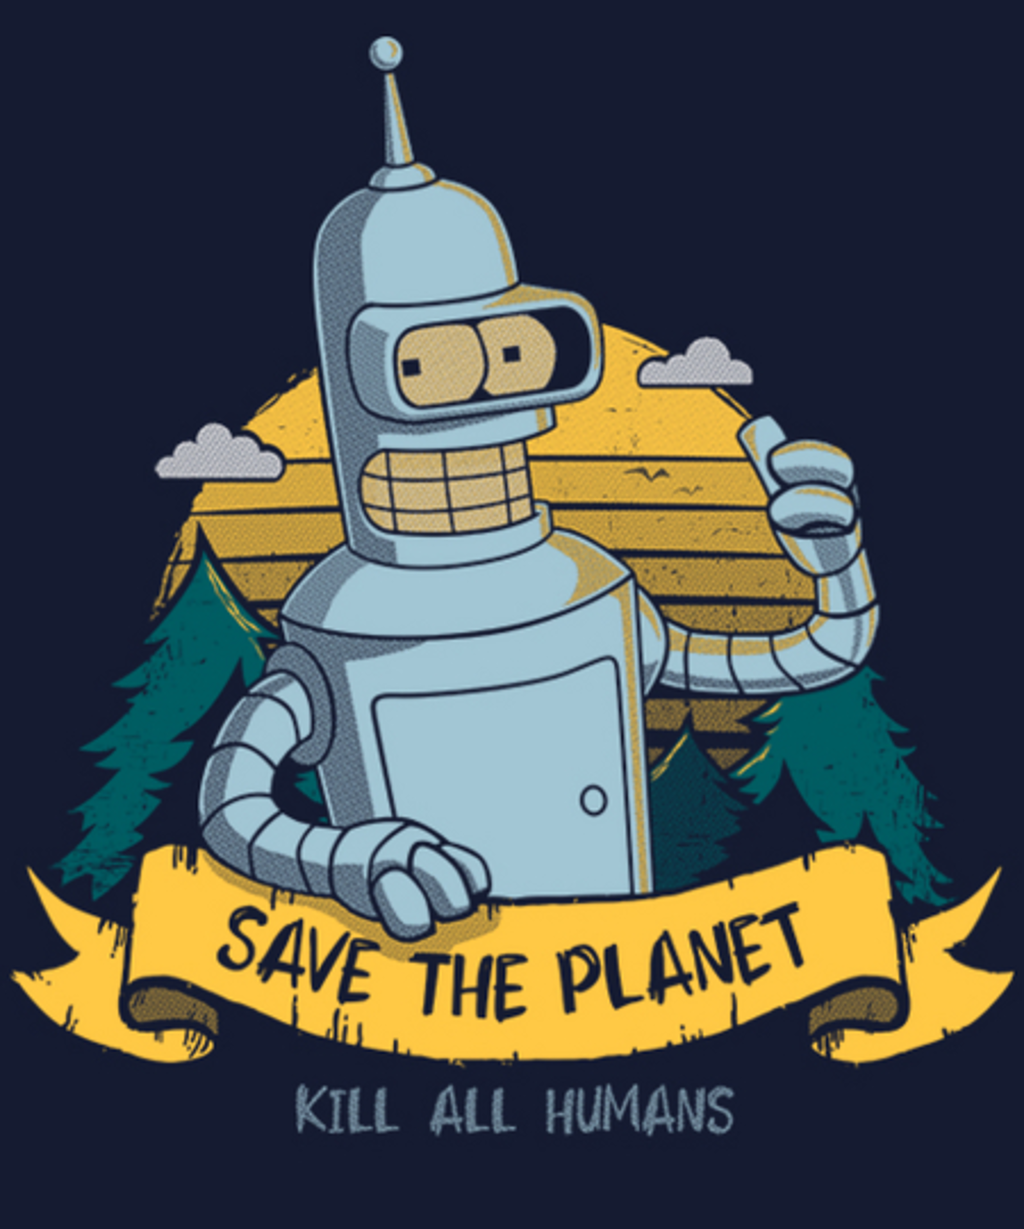 Qwertee: Save the planet - kill all humans